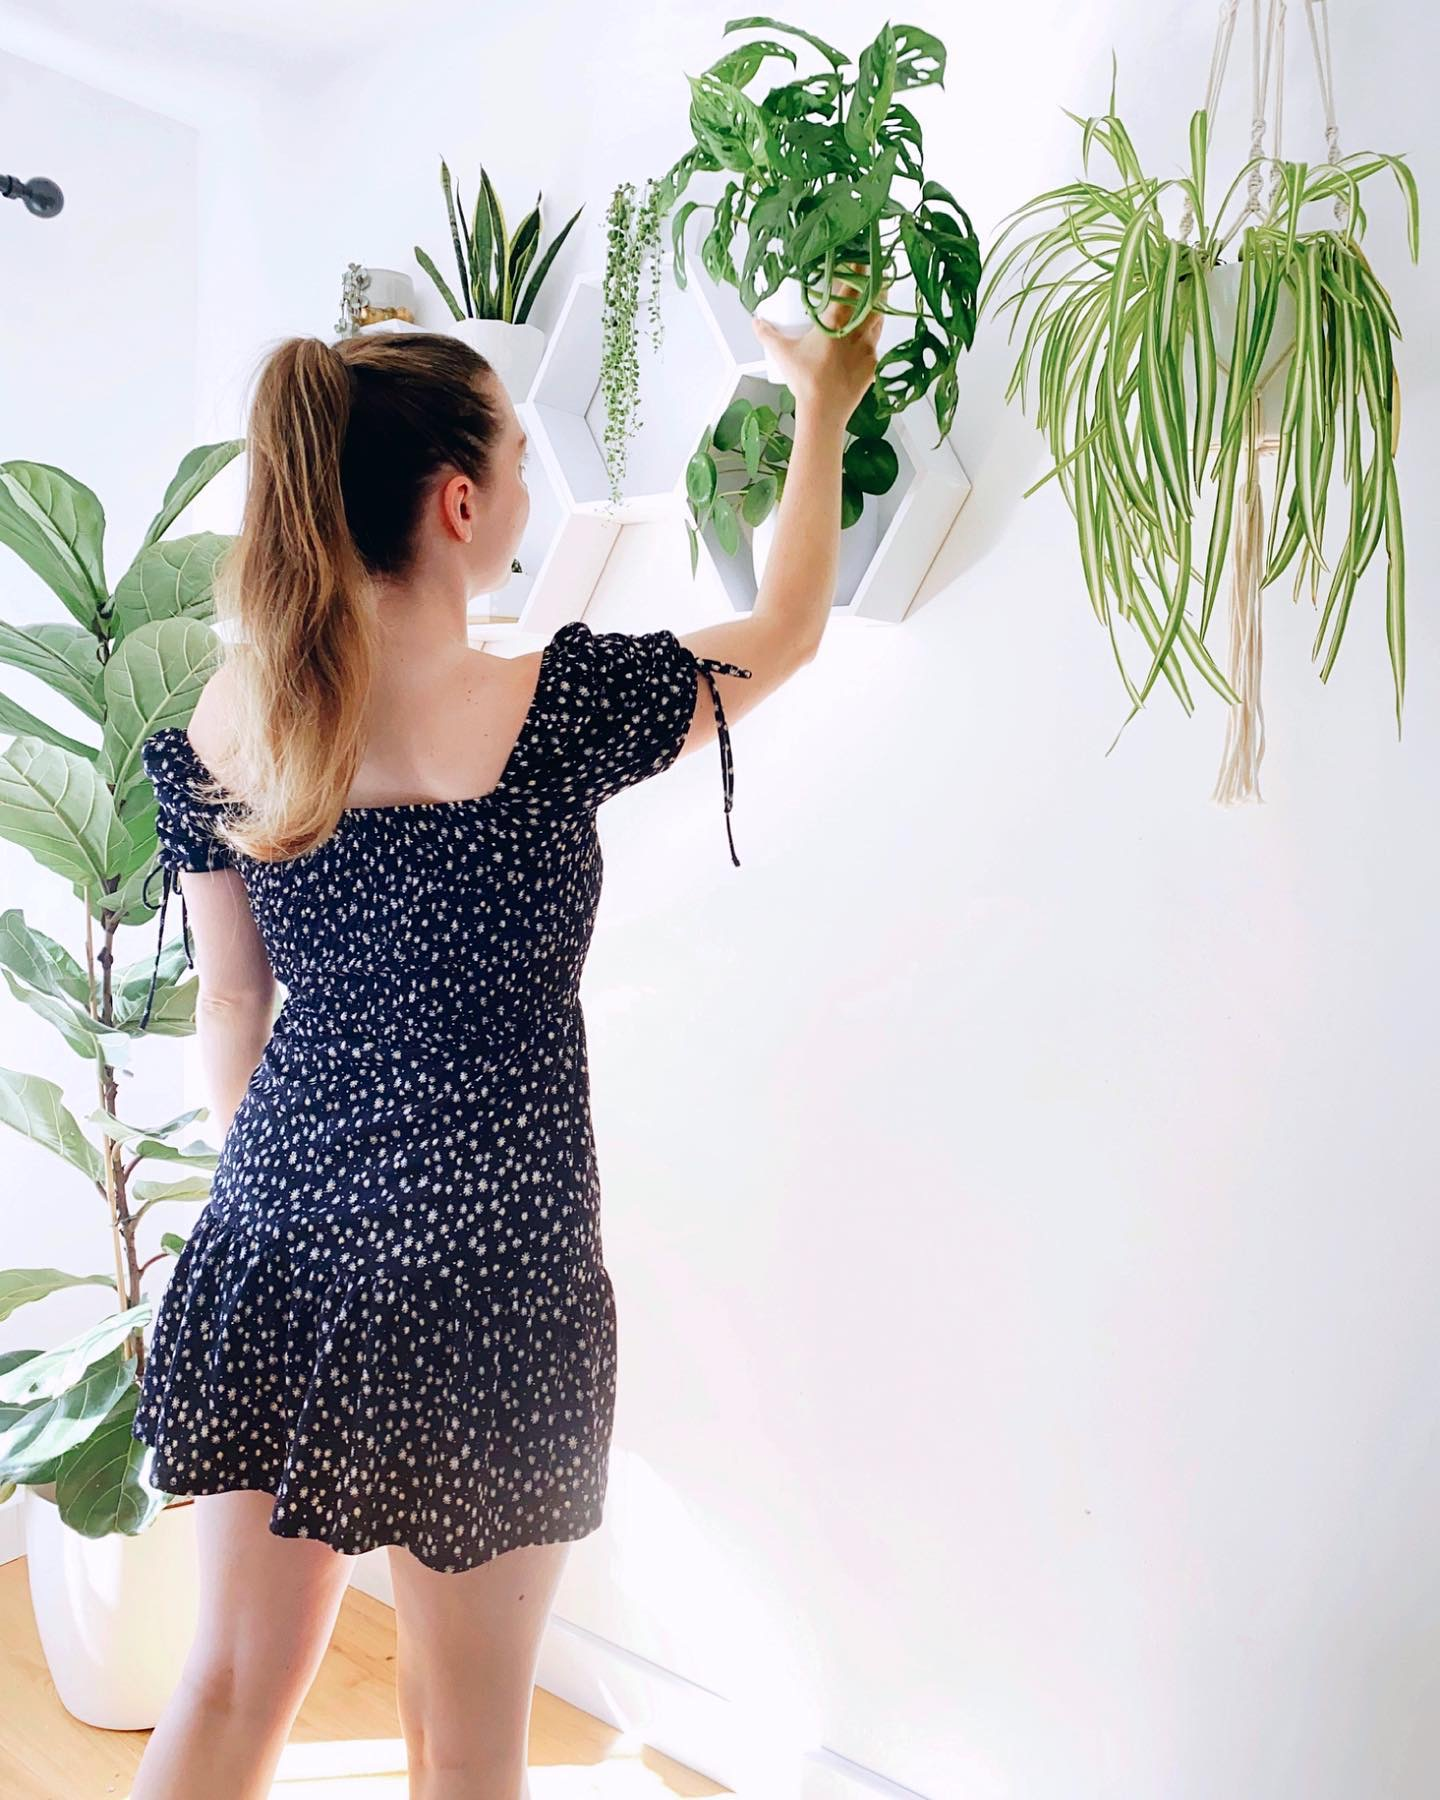 A Tour of my Houseplants + Plant Tips